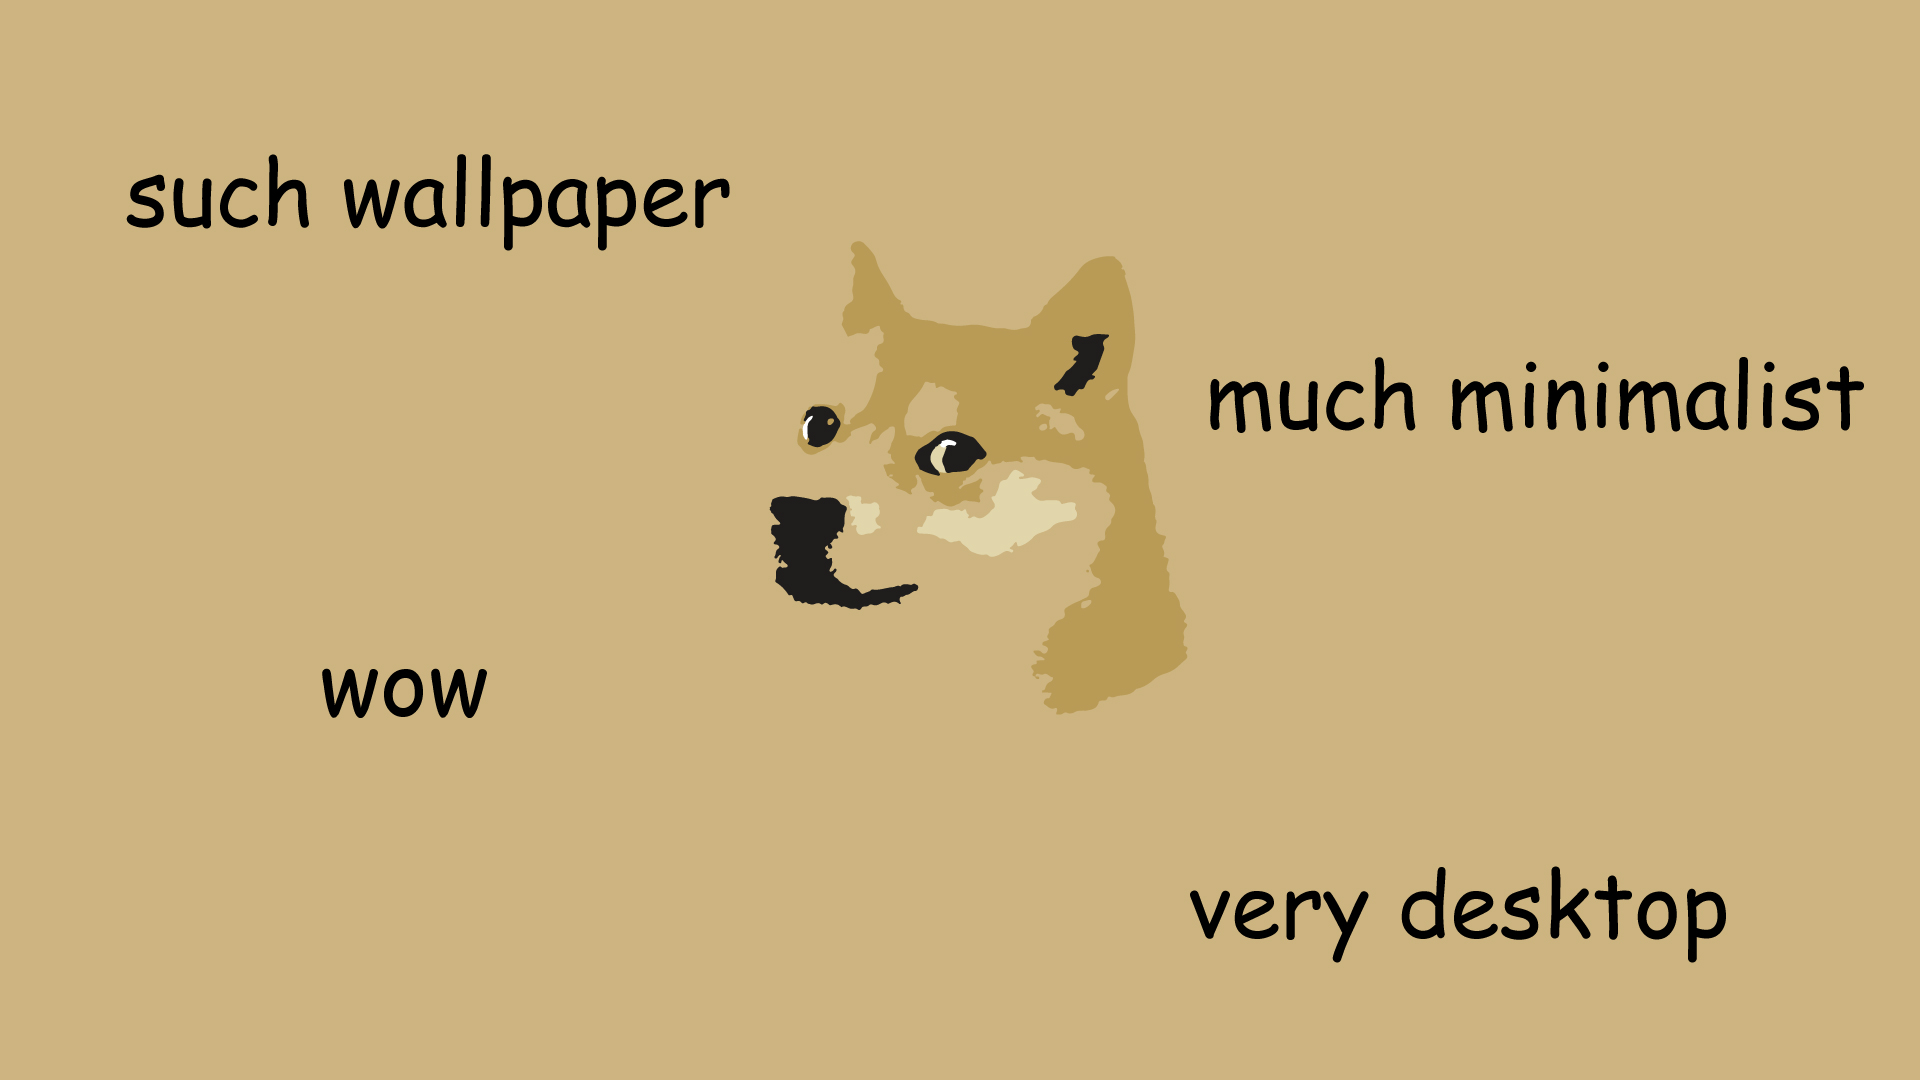 Doge Meme Wallpaper Quality Images iPhoto Pick 1920x1080